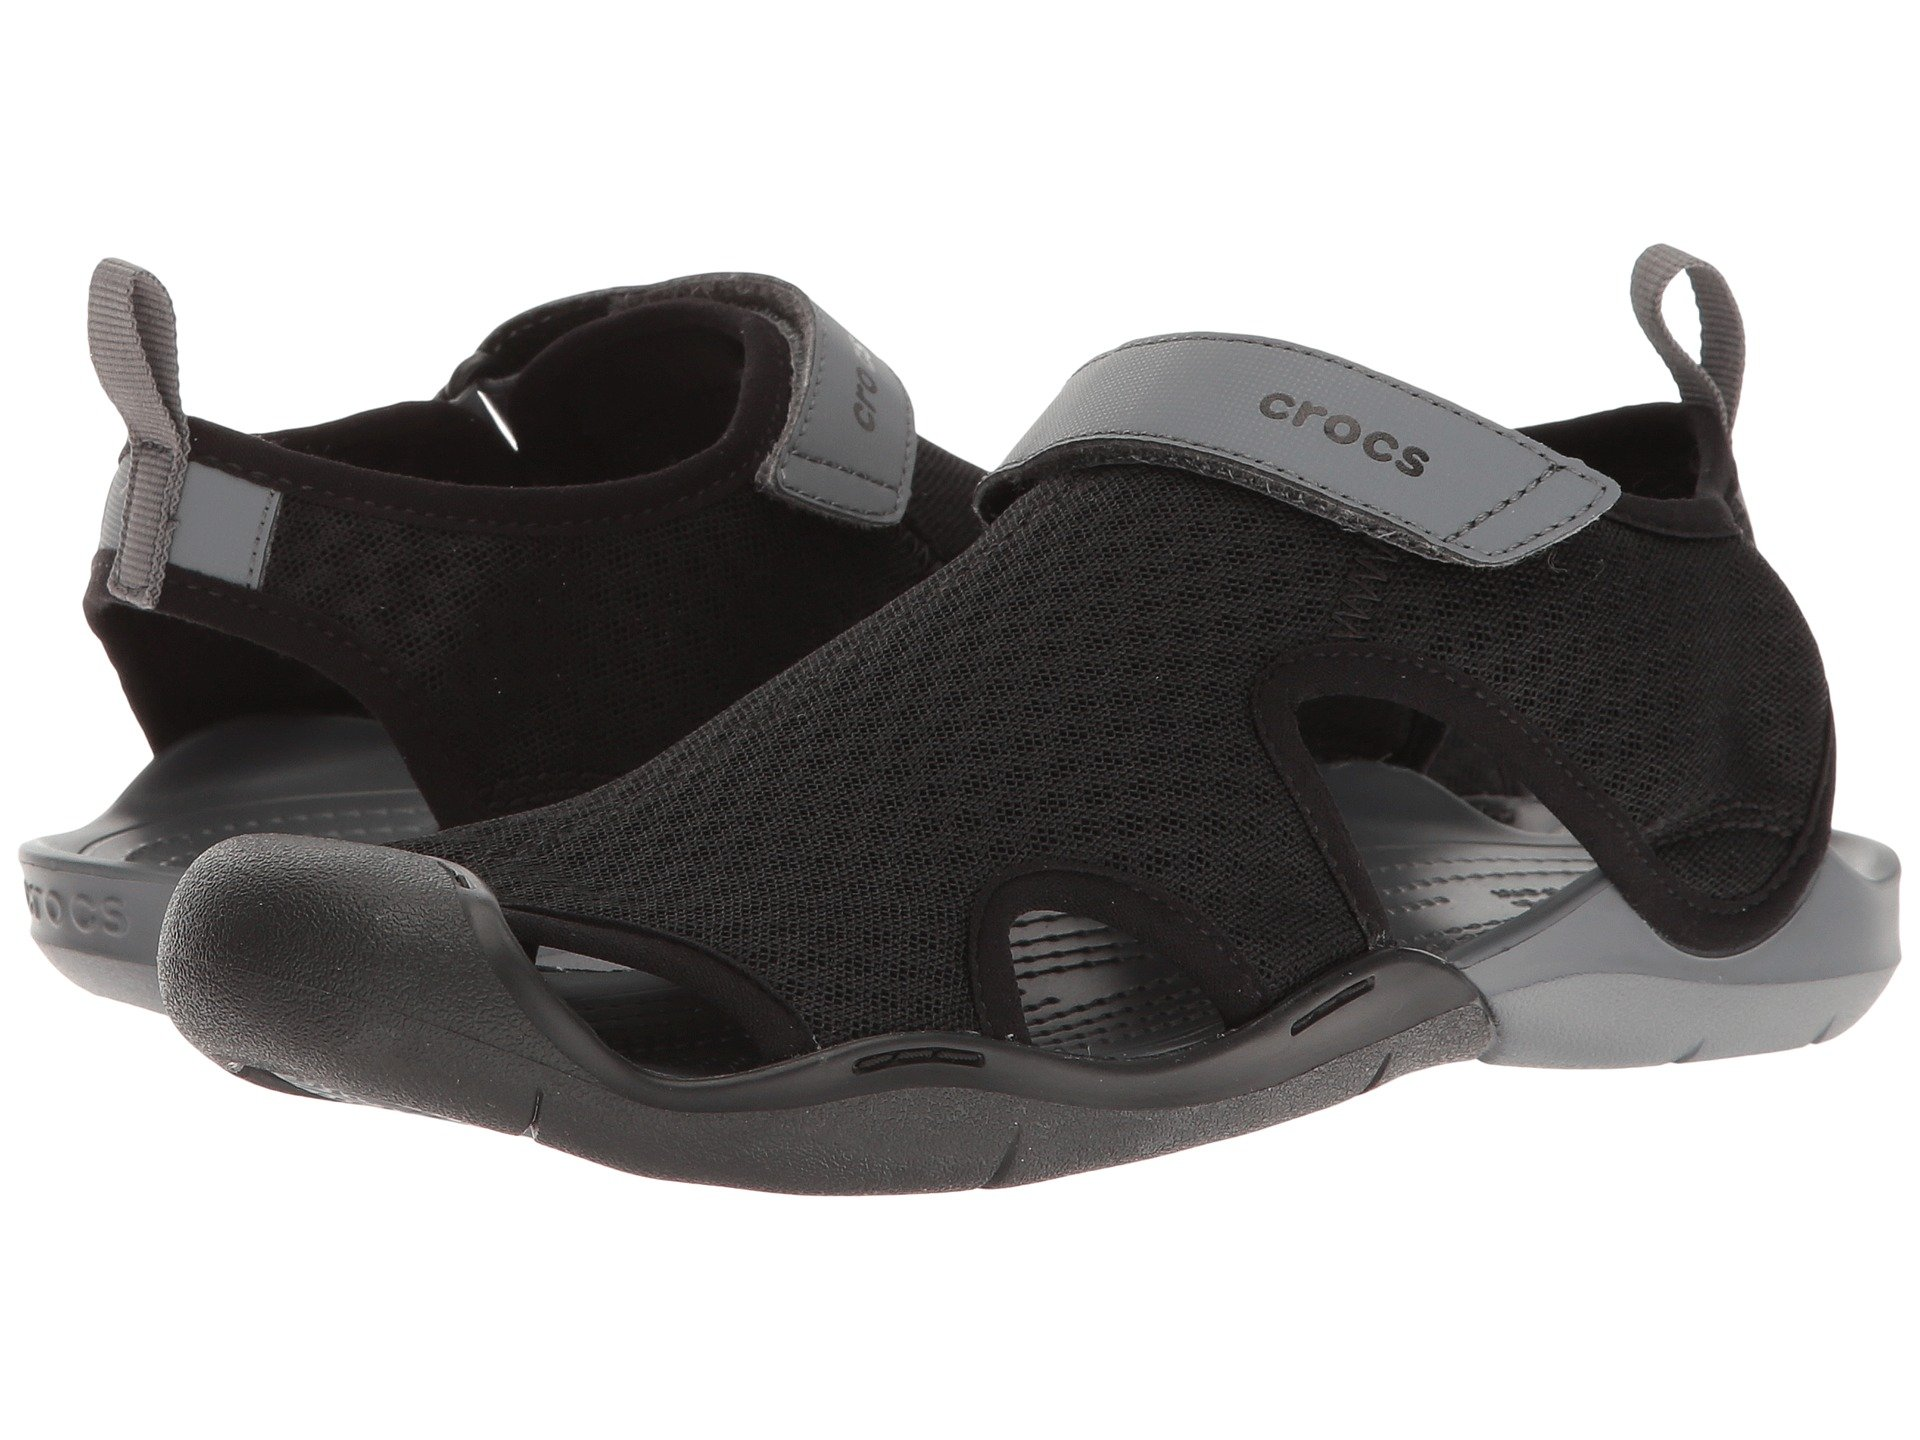 158a23460065d Crocs Shoes Latest Styles + FREE SHIPPING